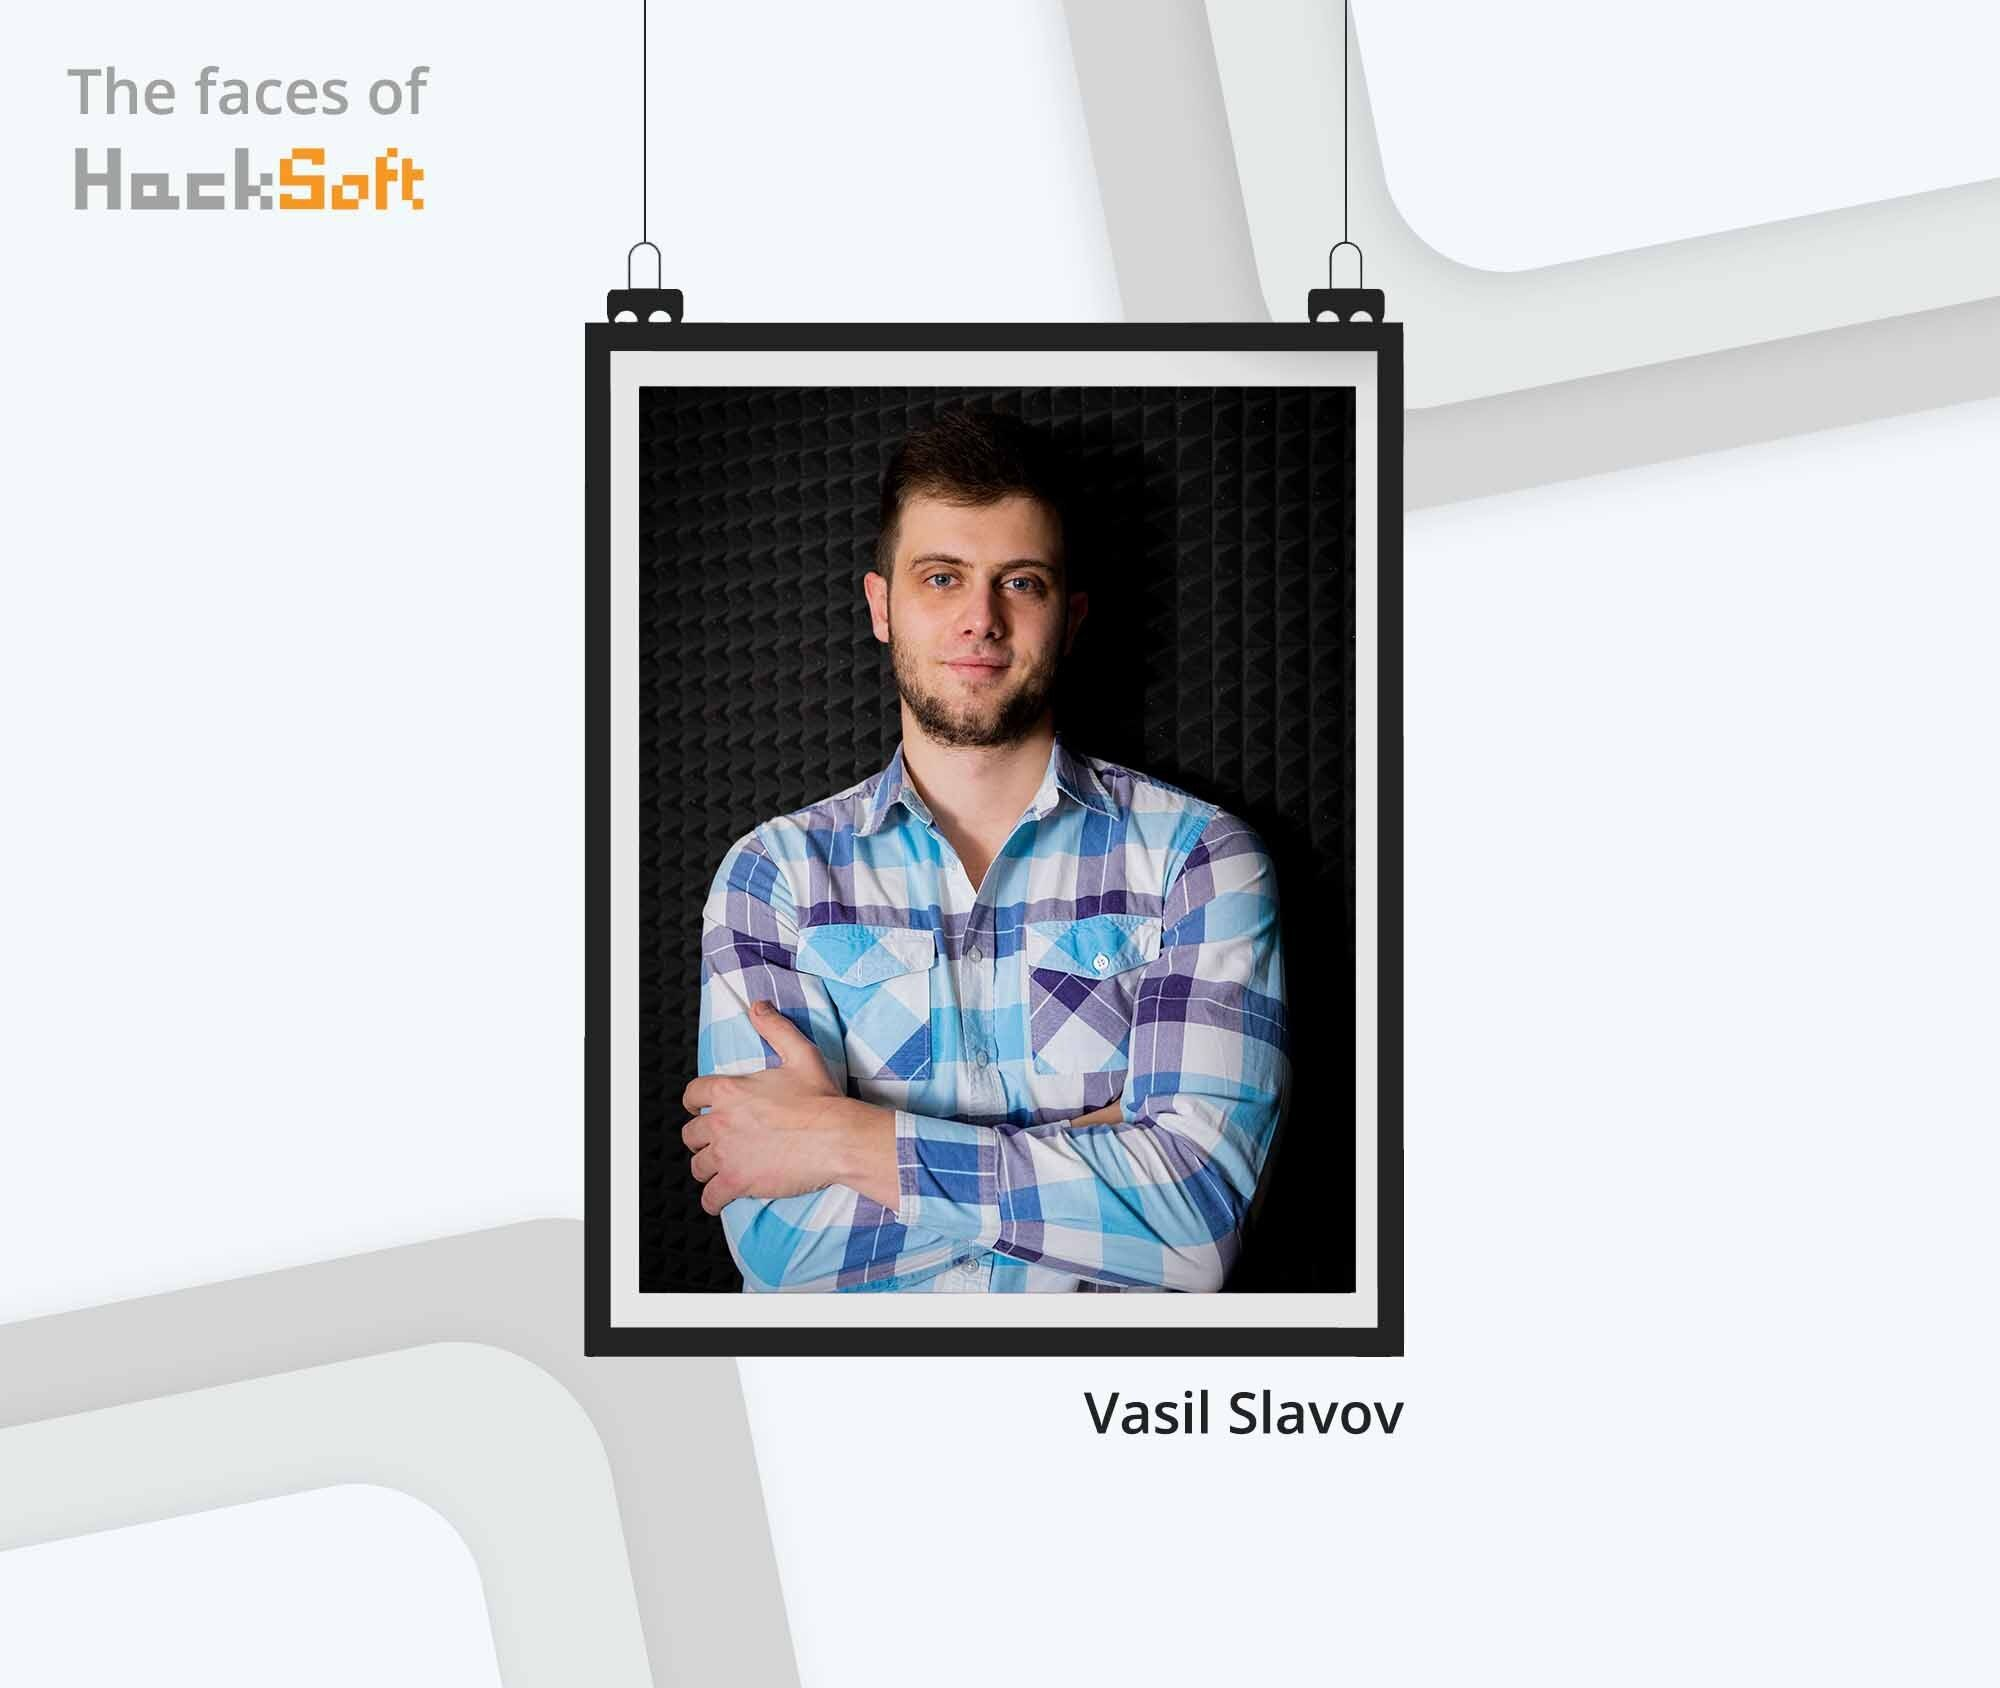 Behind any successful company, stands a motivated team. We would love to introduce you to Vasil Slavov.